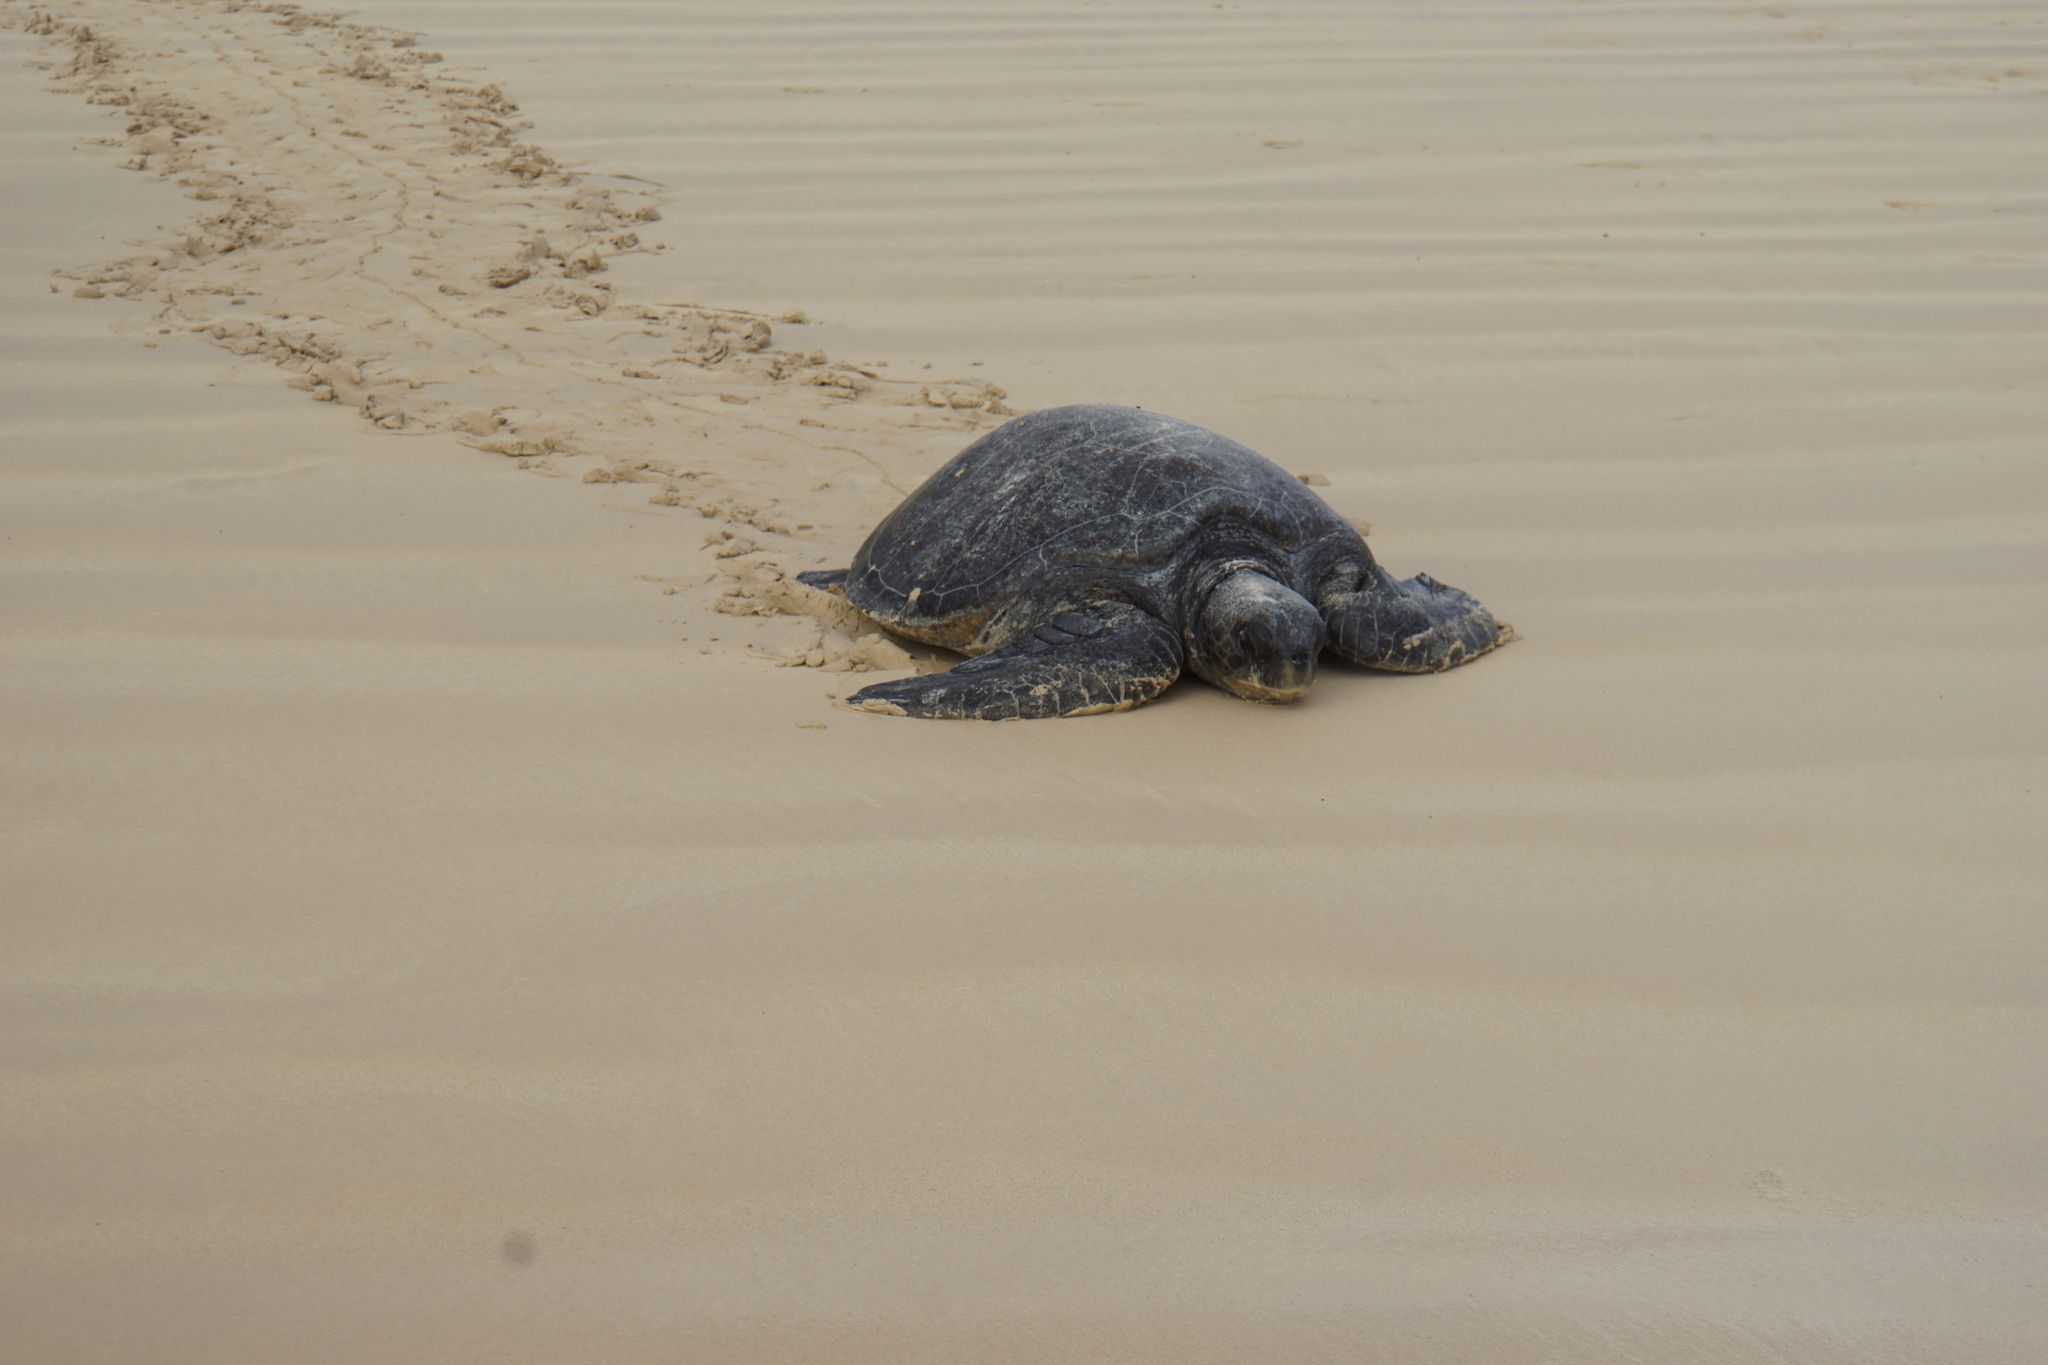 Sea turtles are a rare sight on land, this Galápagos green turtle on Isla Floreana